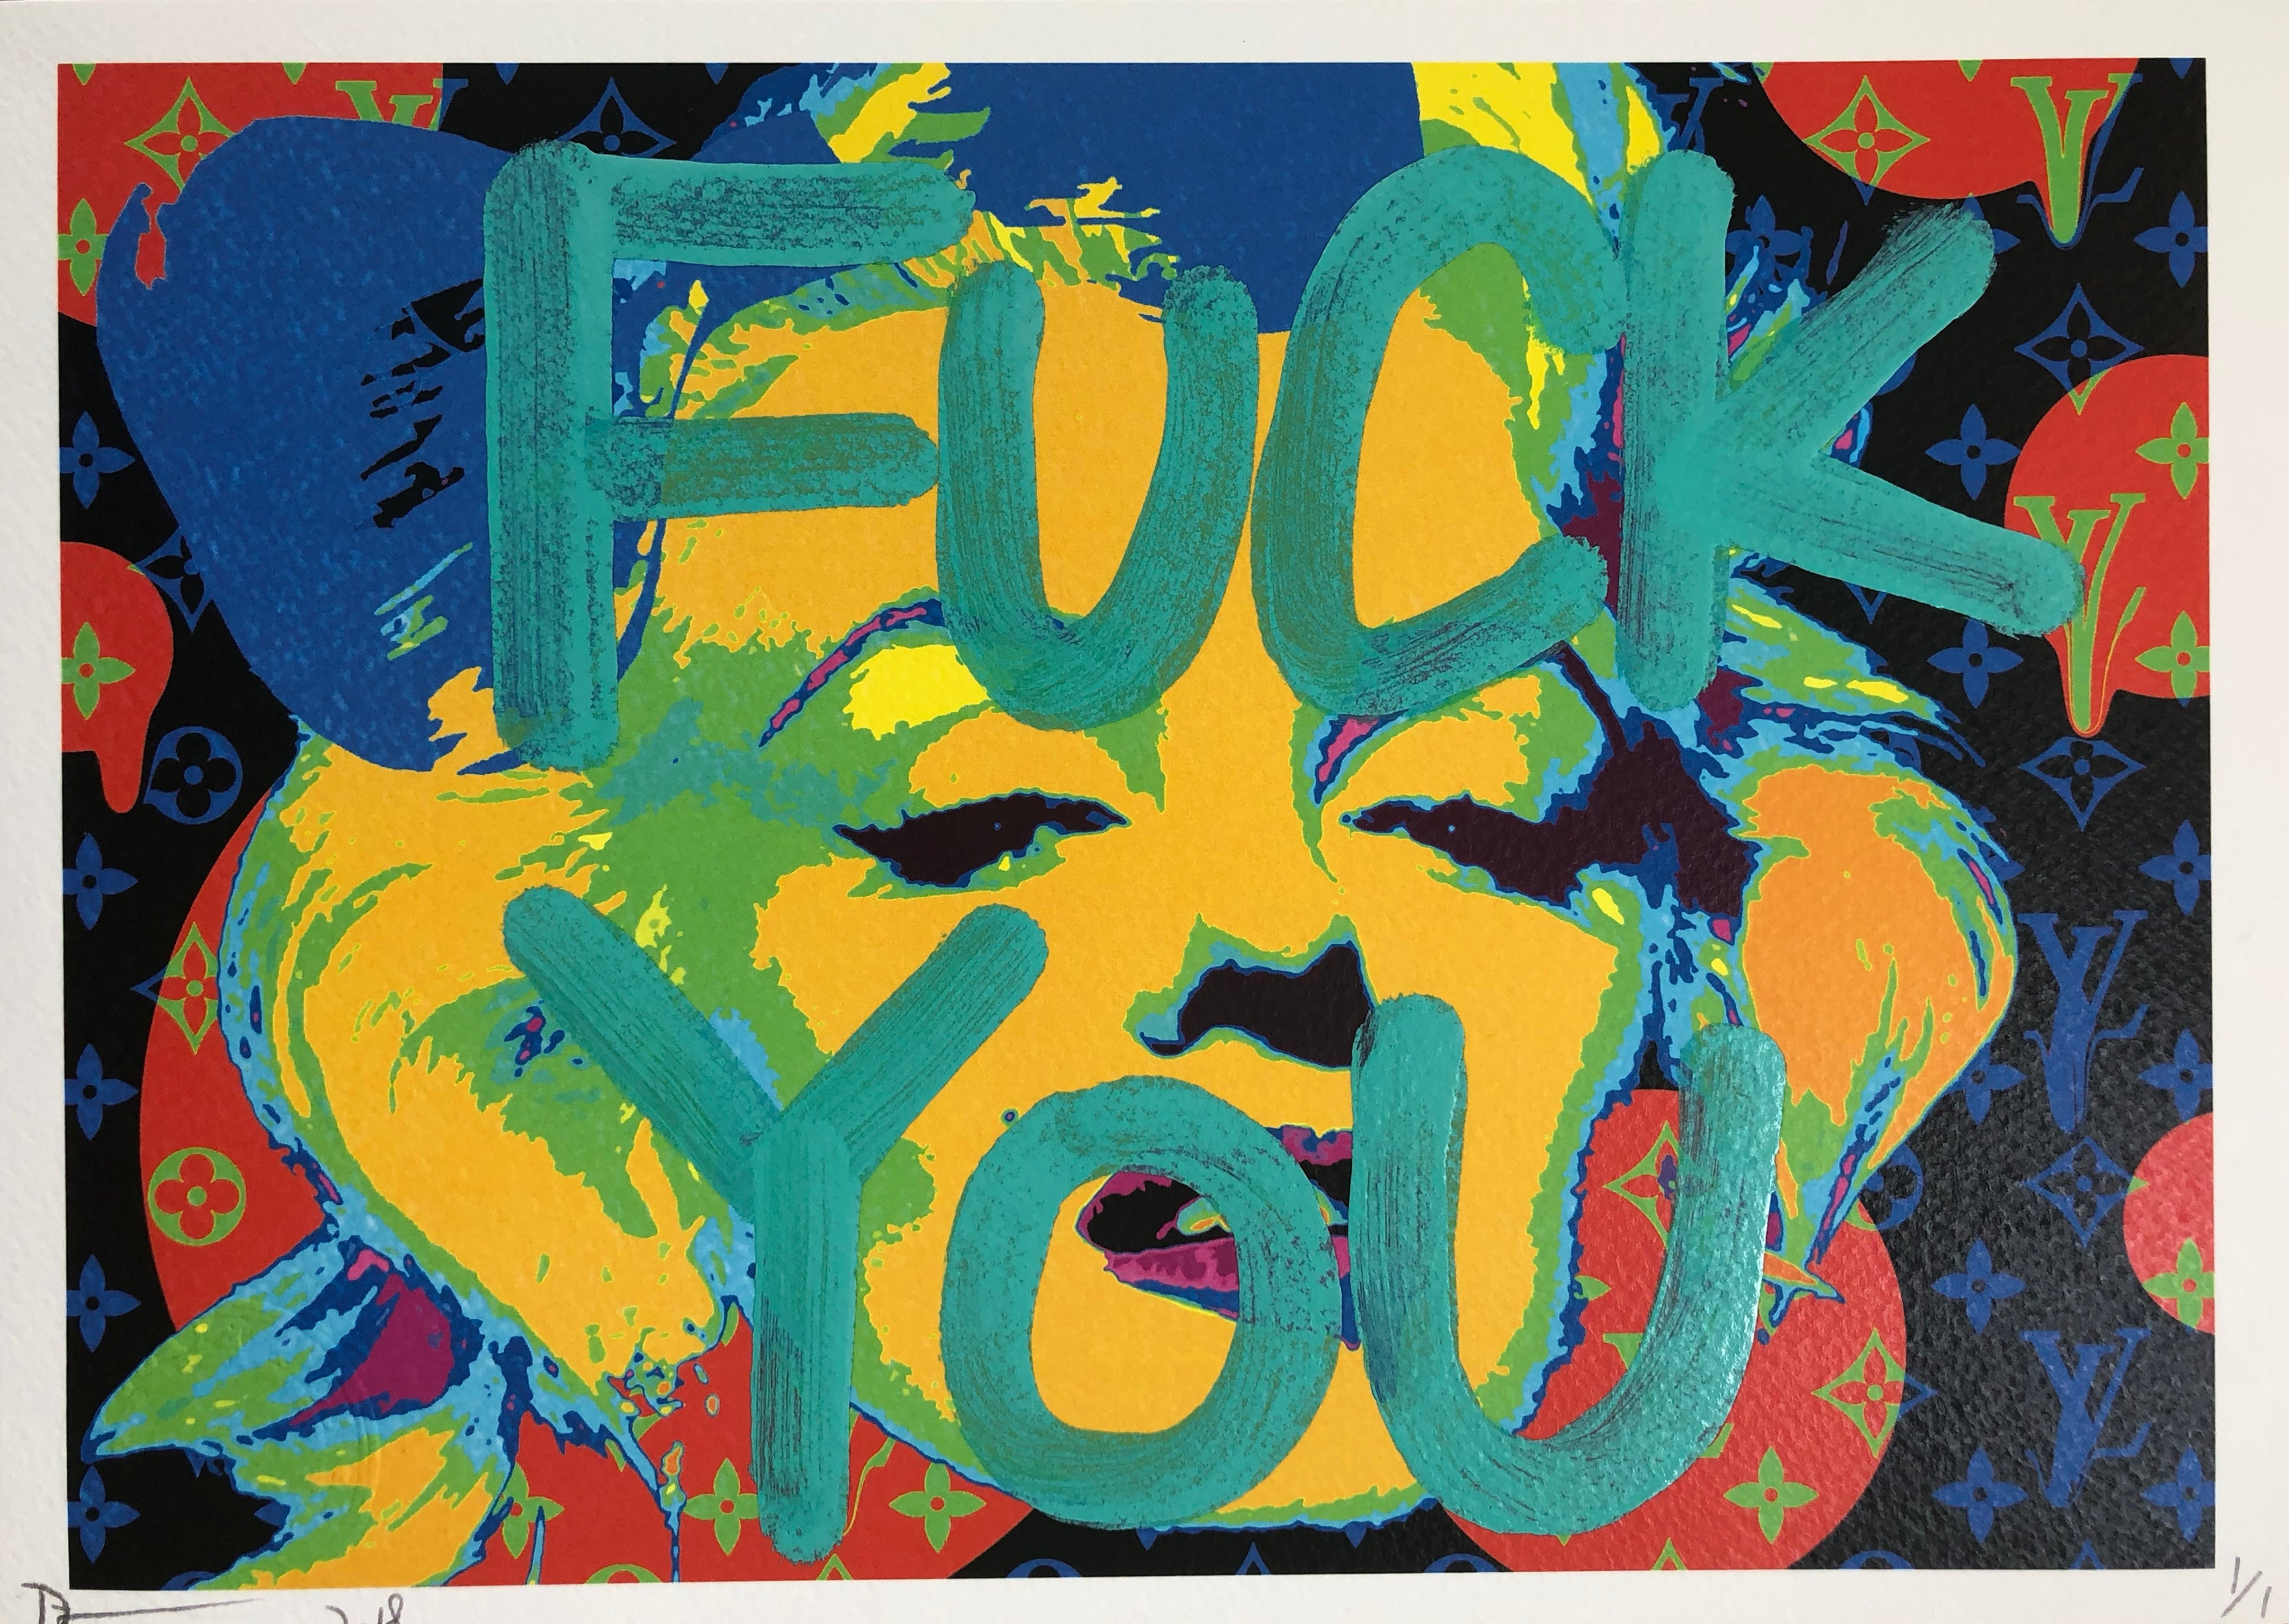 """F YOU"" 29x21cm (Edition of 1)"